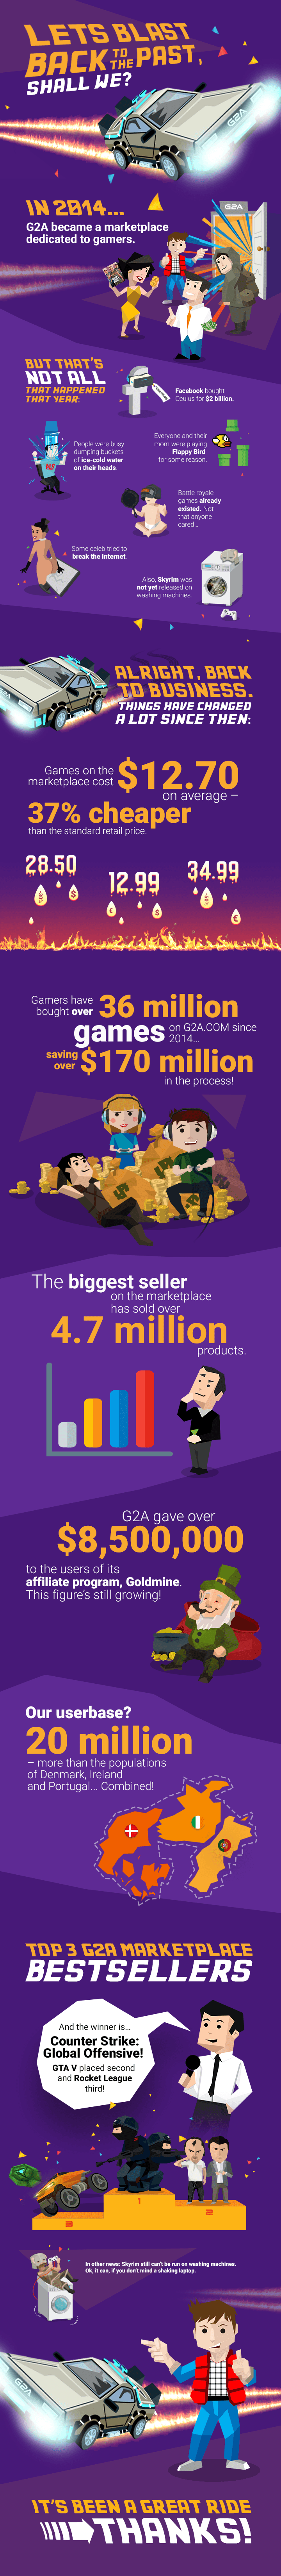 infographic g2a marketplace